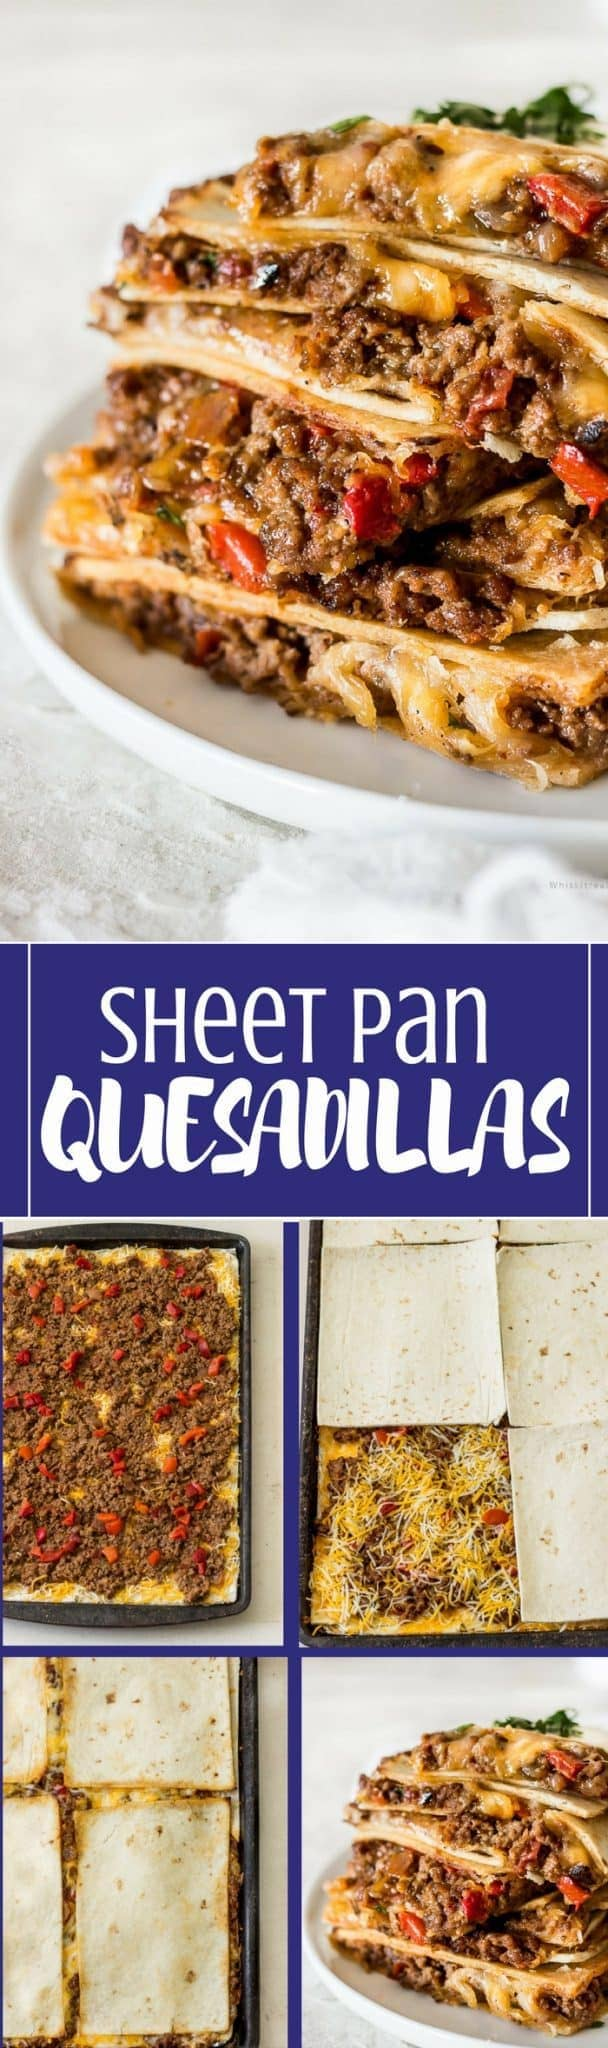 Quesadillas in the oven (Sheet Pan Quesadilla recipe)